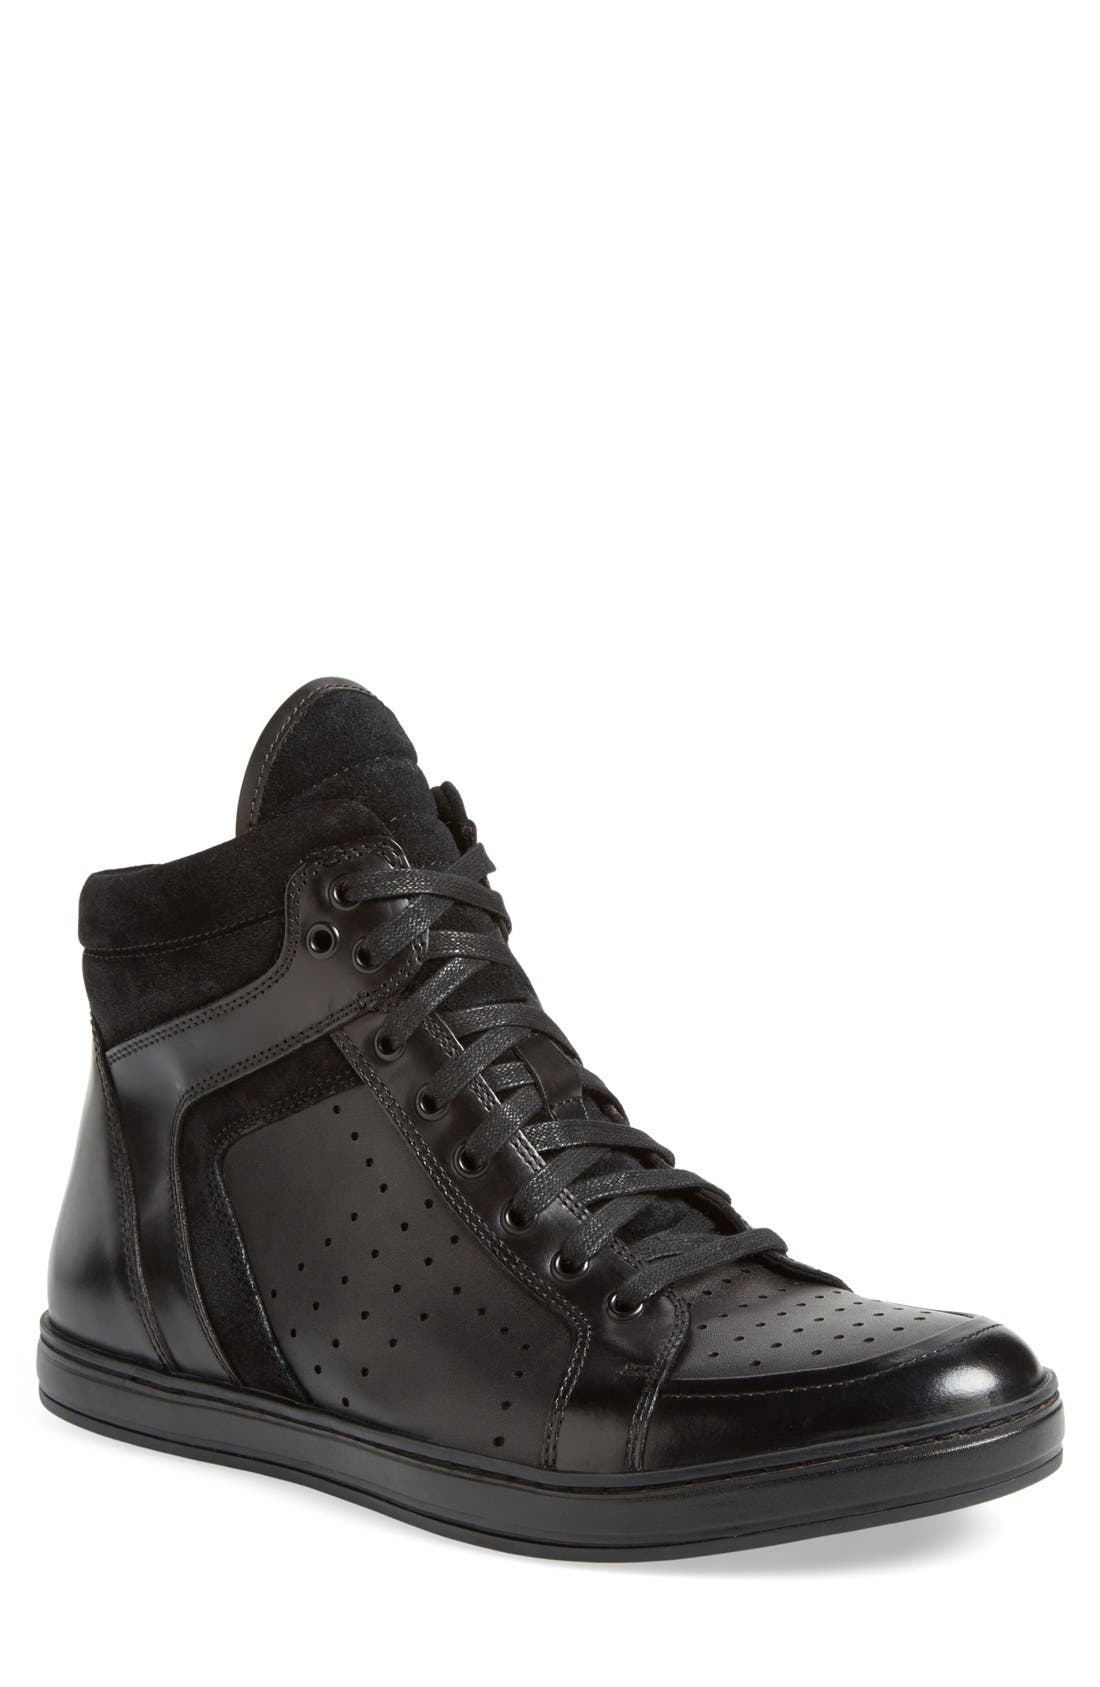 Alternate Image 1 Selected - Kenneth Cole New York 'Big Brand' Sneaker (Men)